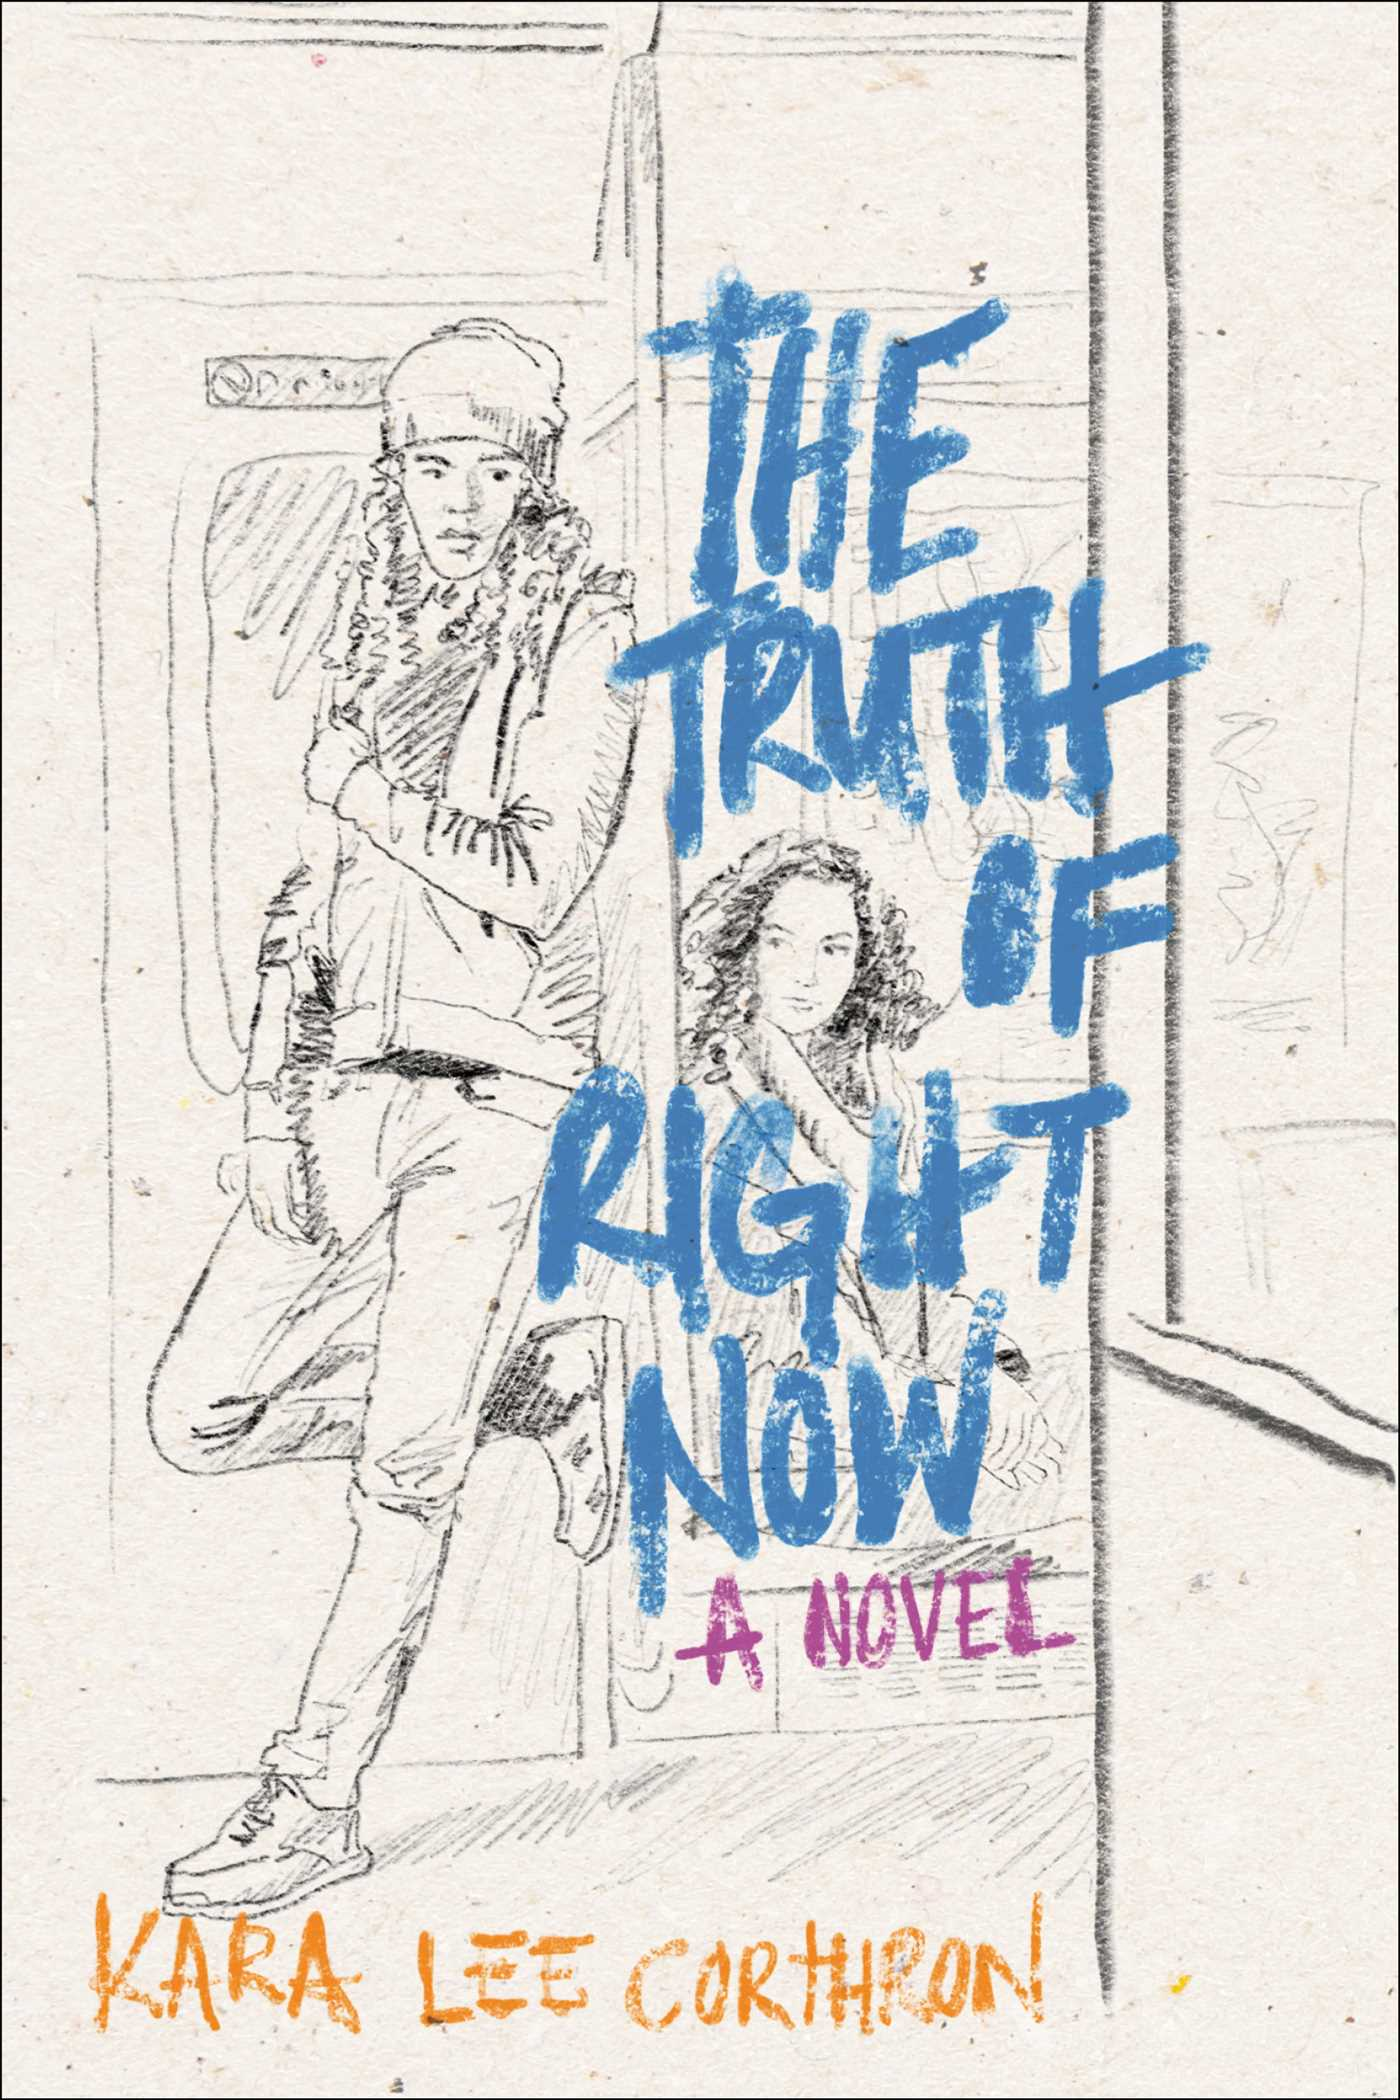 The Truth of Right Now  by Kara Lee Corthron  Winner of the Parents' Choice Award Gold Medal (2017)